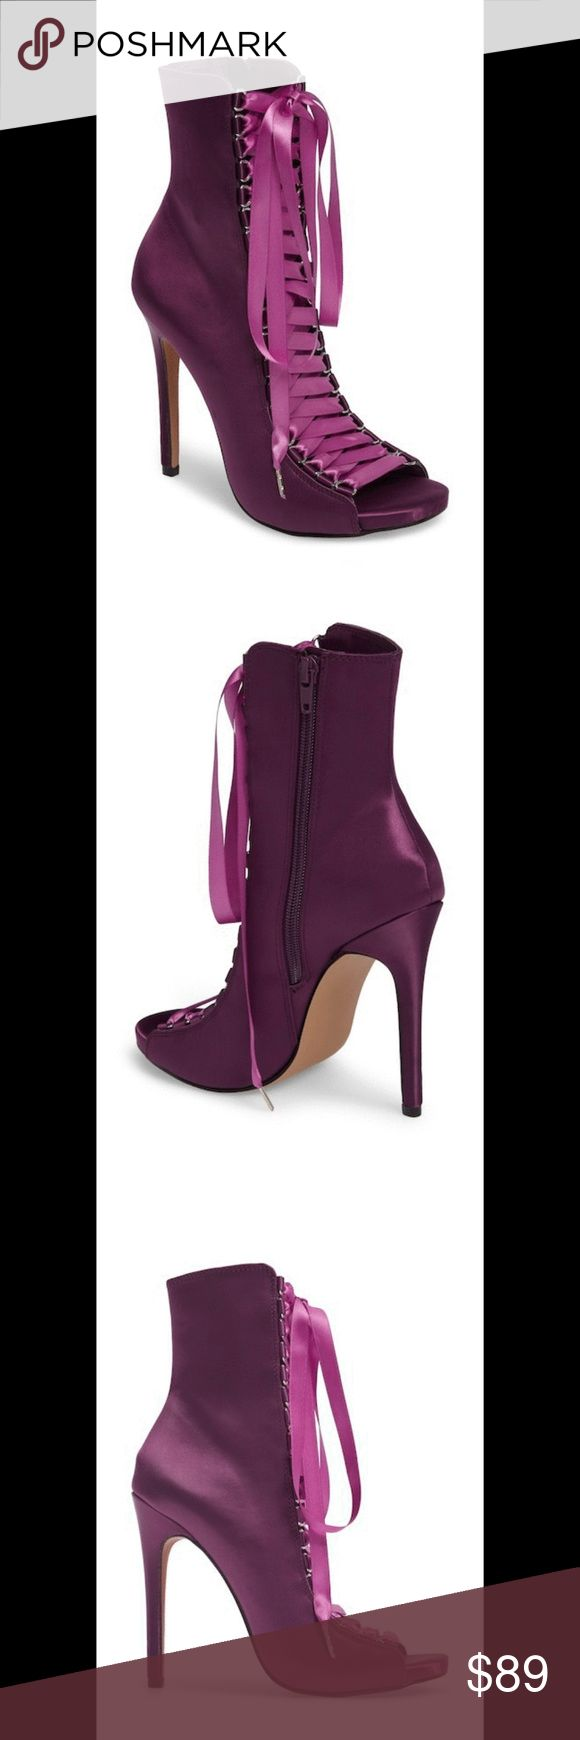 0426900ef8b3 NWT! Steve Madden Fuego Lace-Up Bootie Sexy purple satin peep-toe stiletto  bootie finished with lustrous satin ribbon laces. - 5